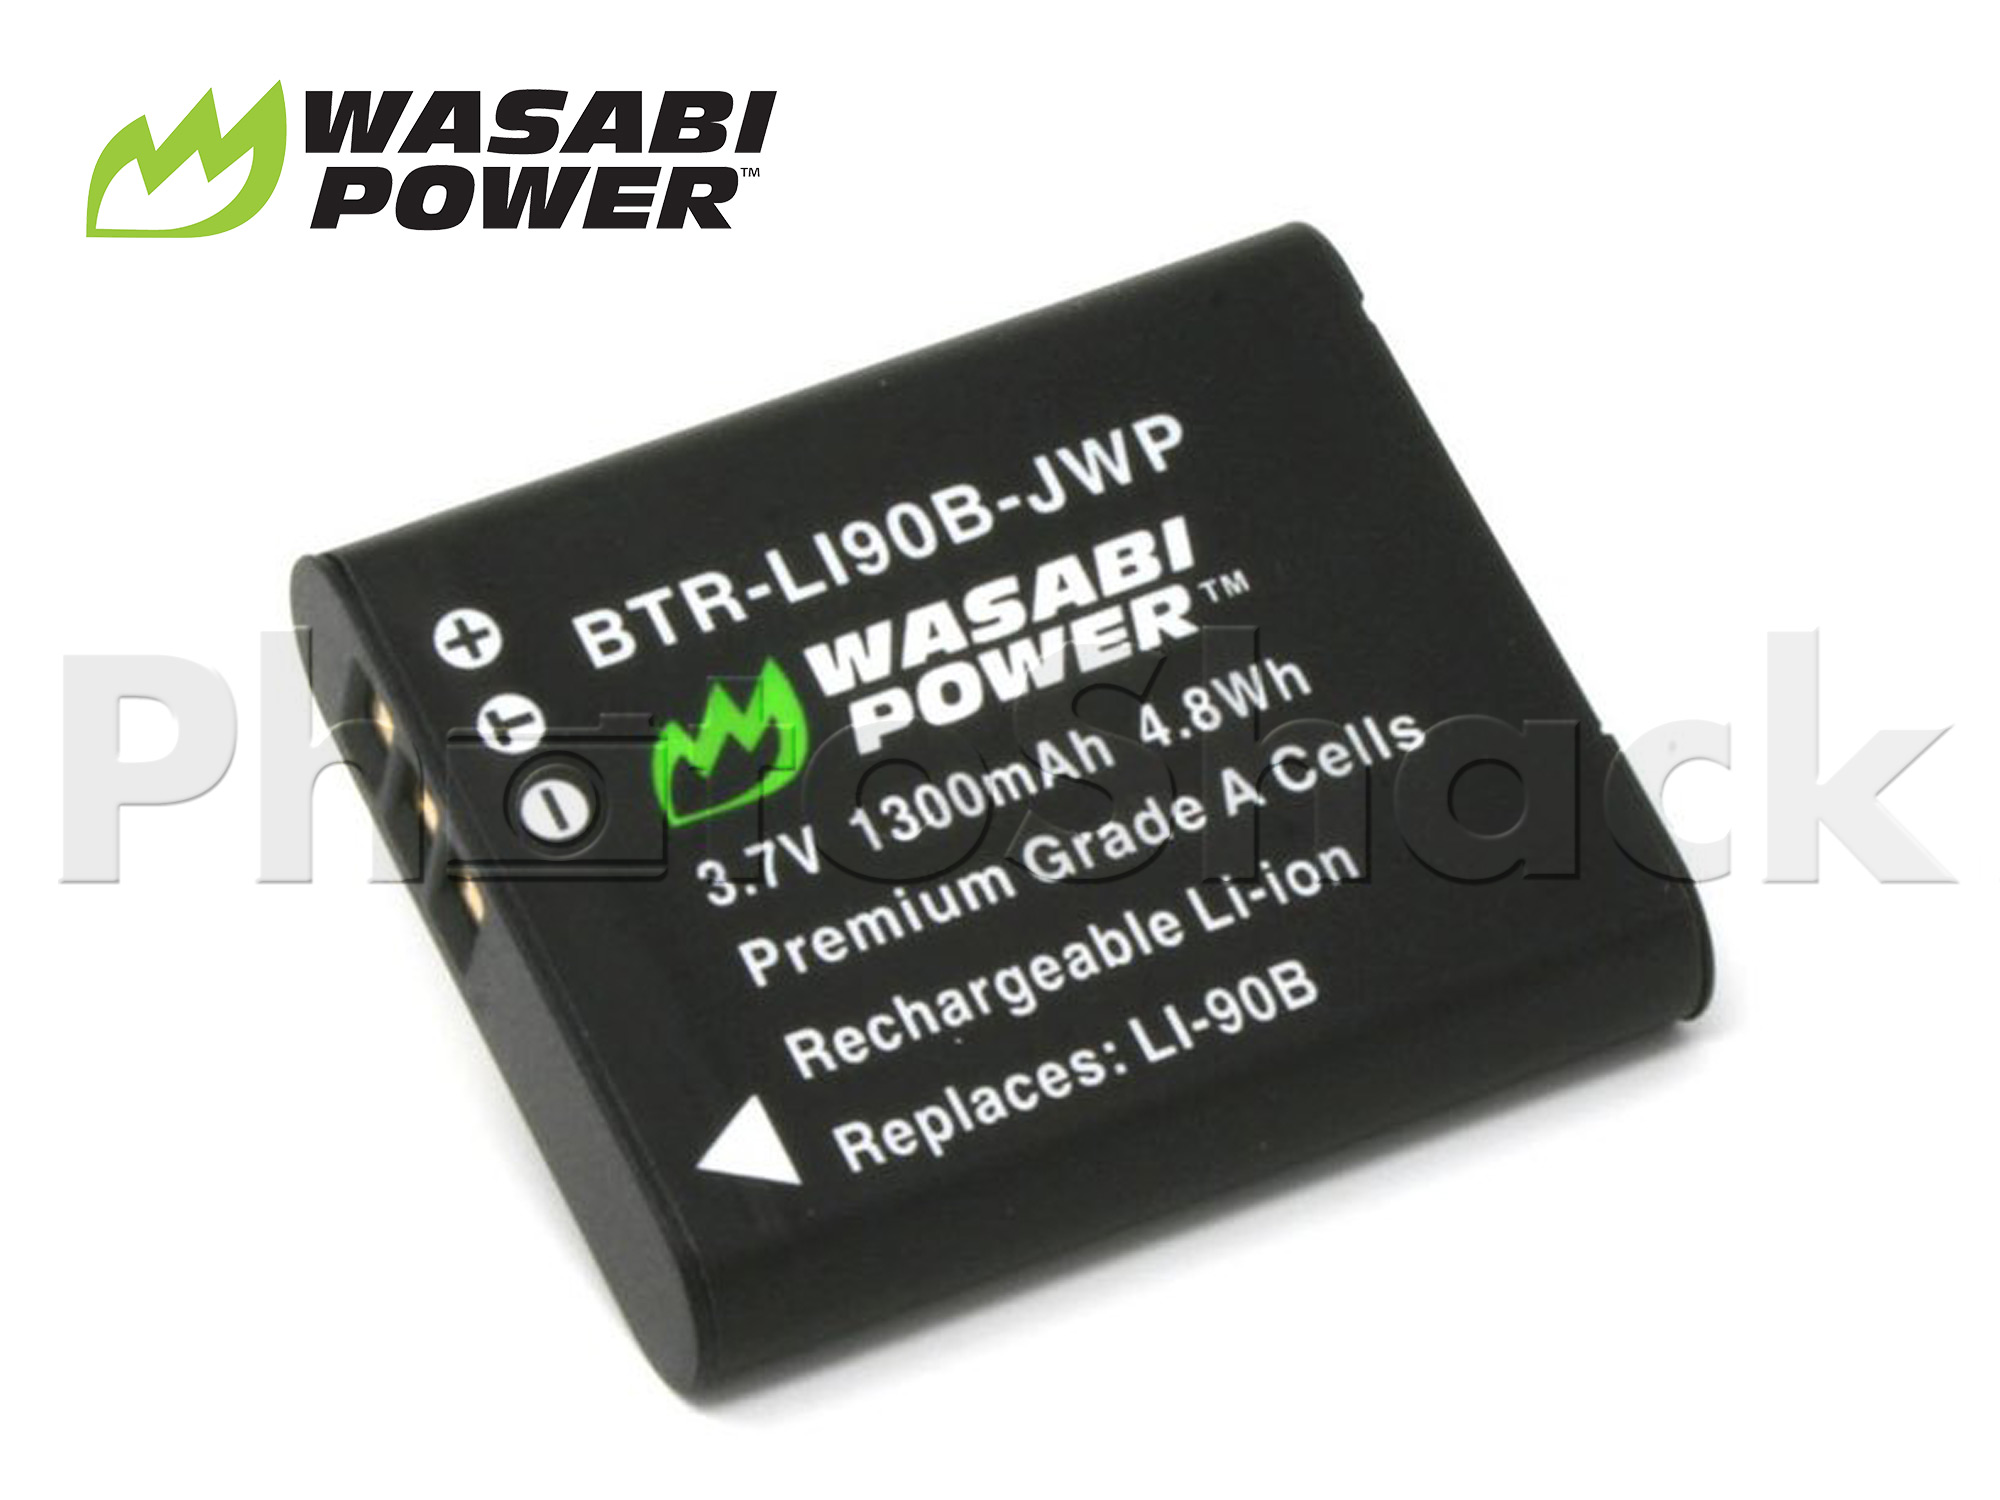 LI-90B Battery for Olympus - Wasabi Power